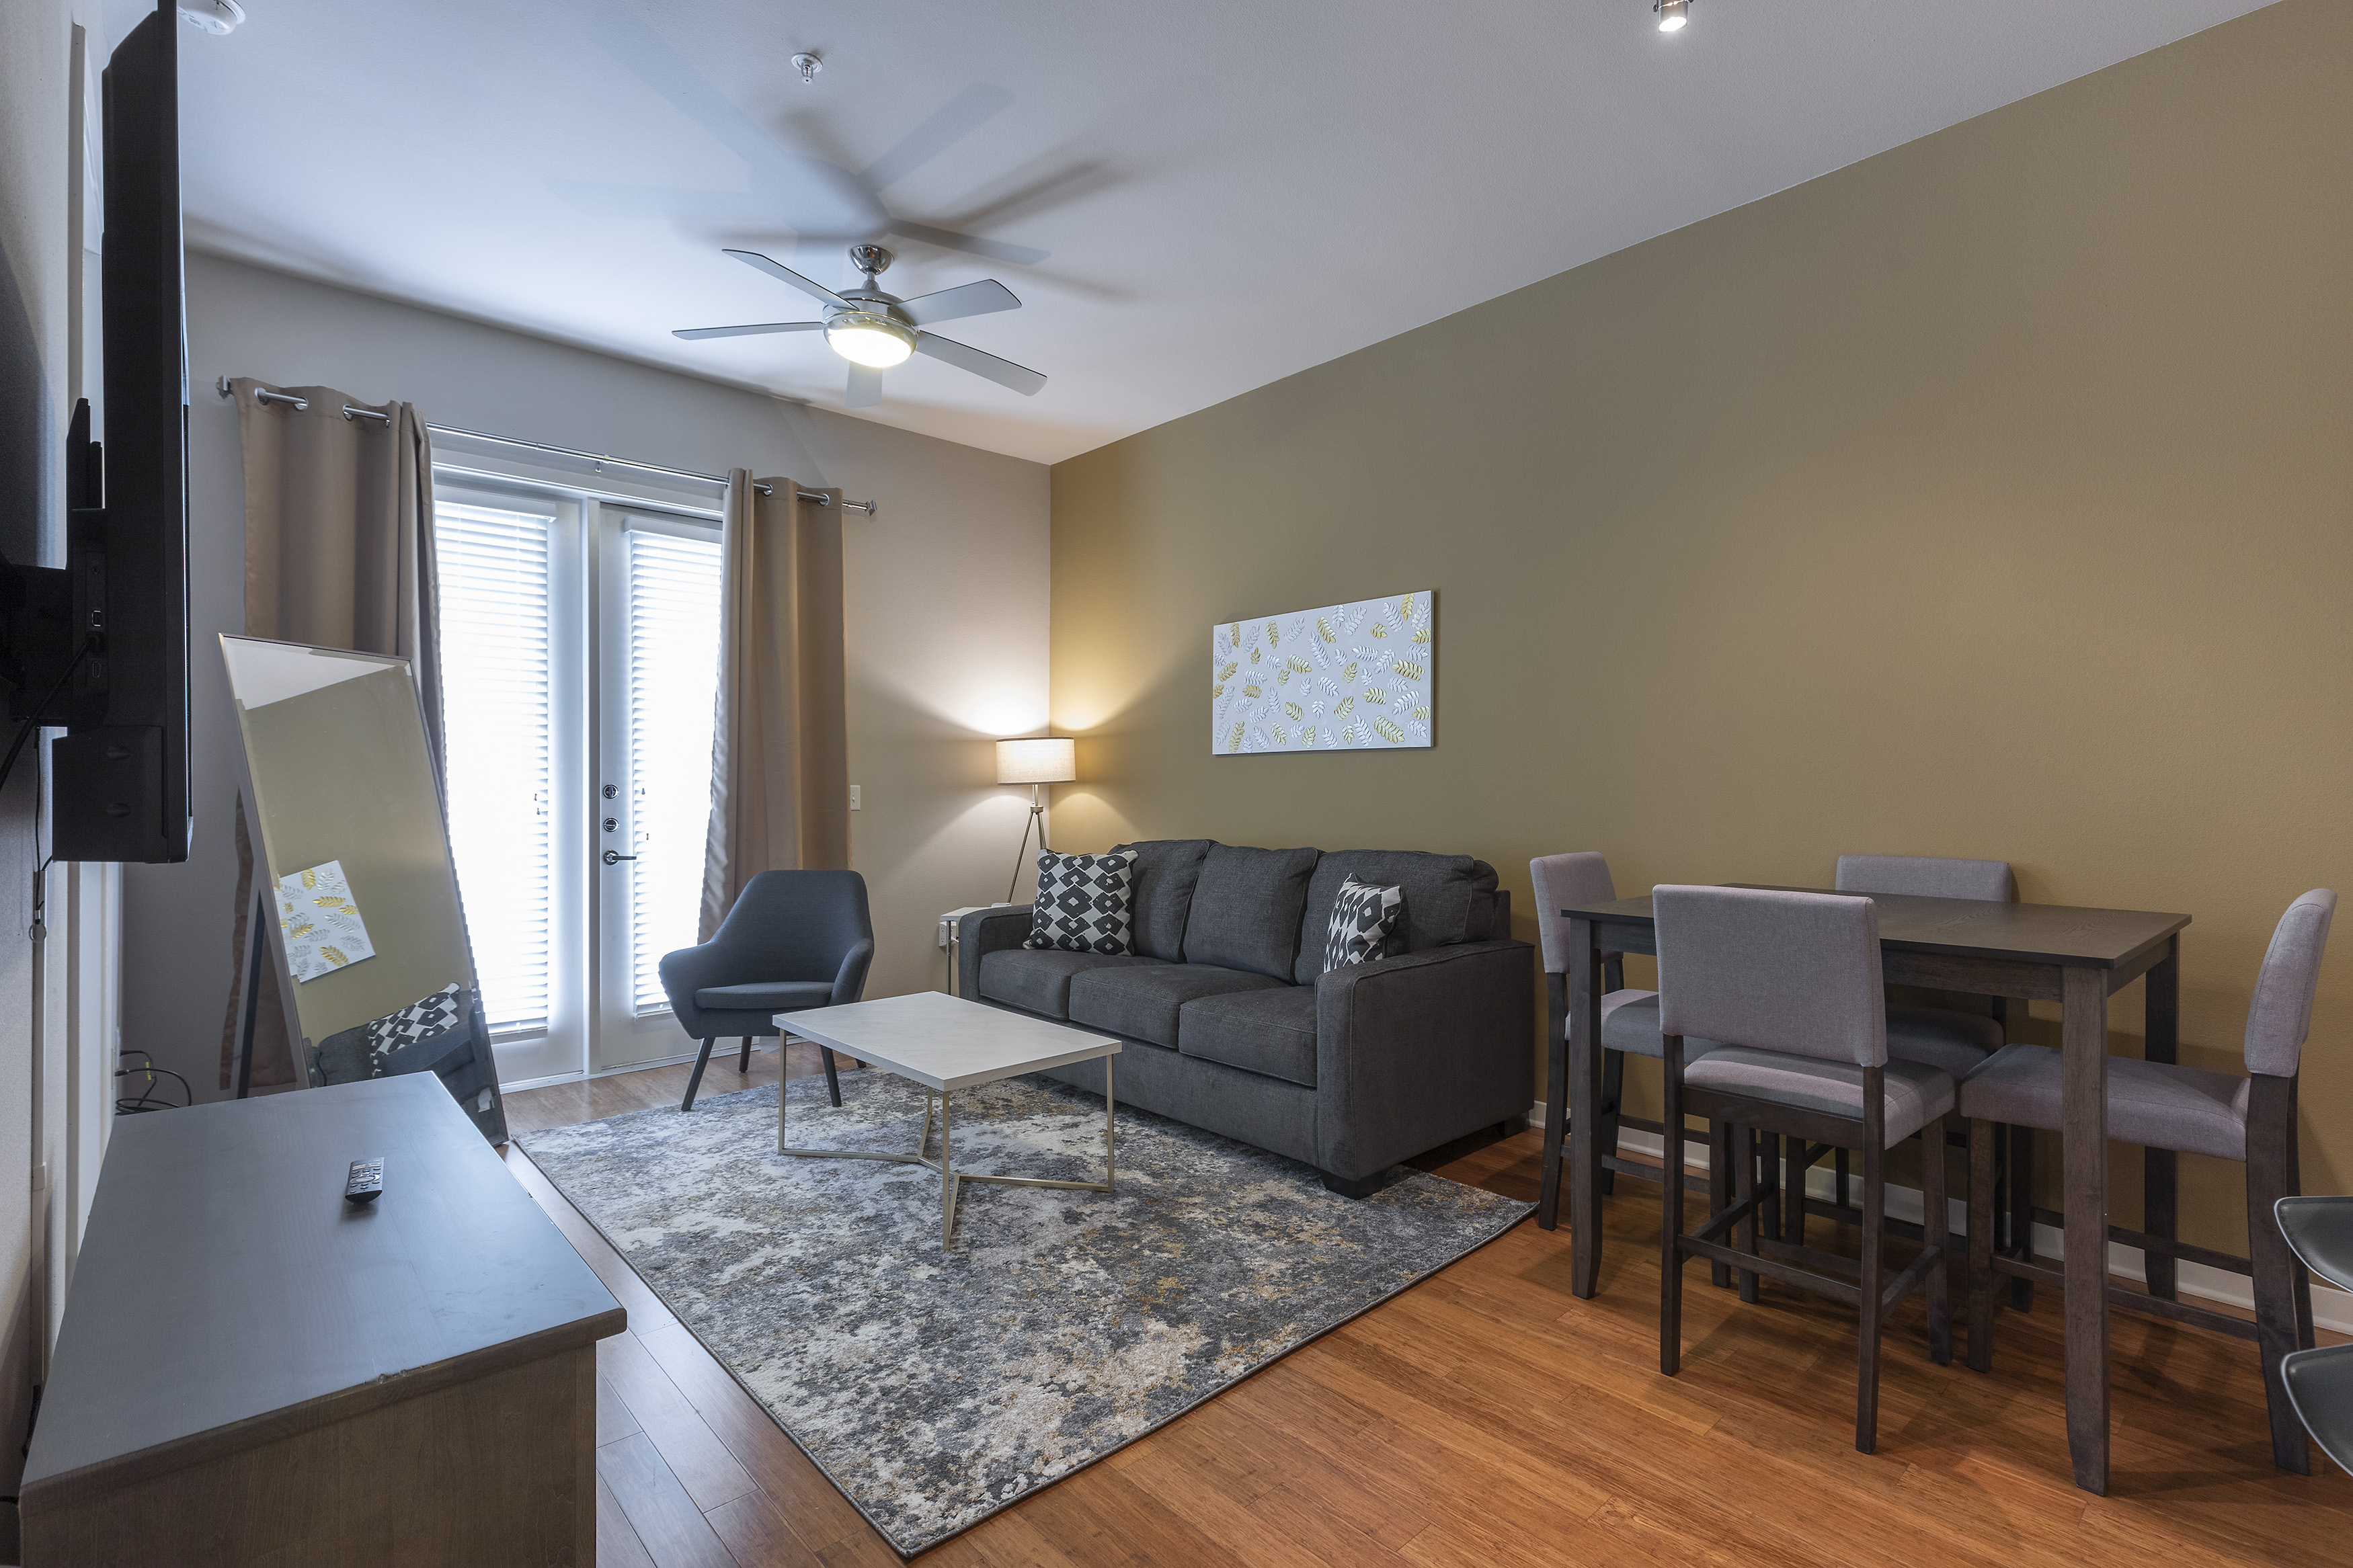 LUXURIOUS - KING SIZED BED - MED CENTER FULLY EQUIPPED CONDO photo 21441046